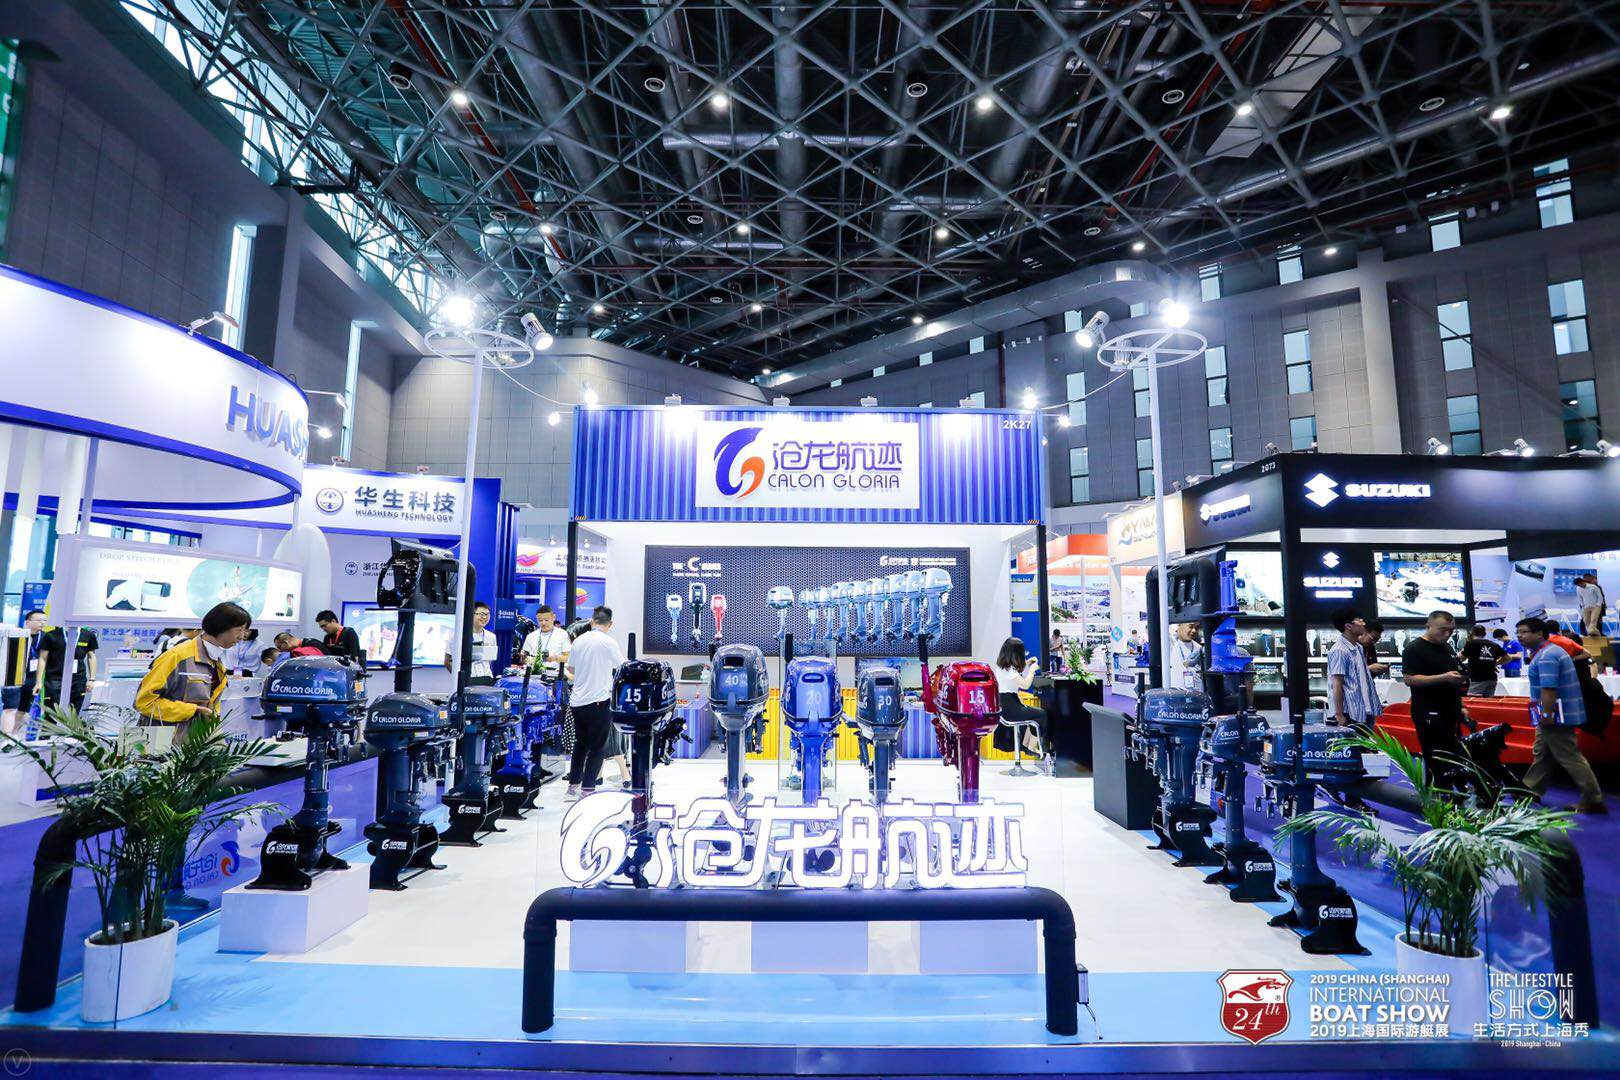 CG MARINE in 2019 CIBS Shanghai International Boat Show